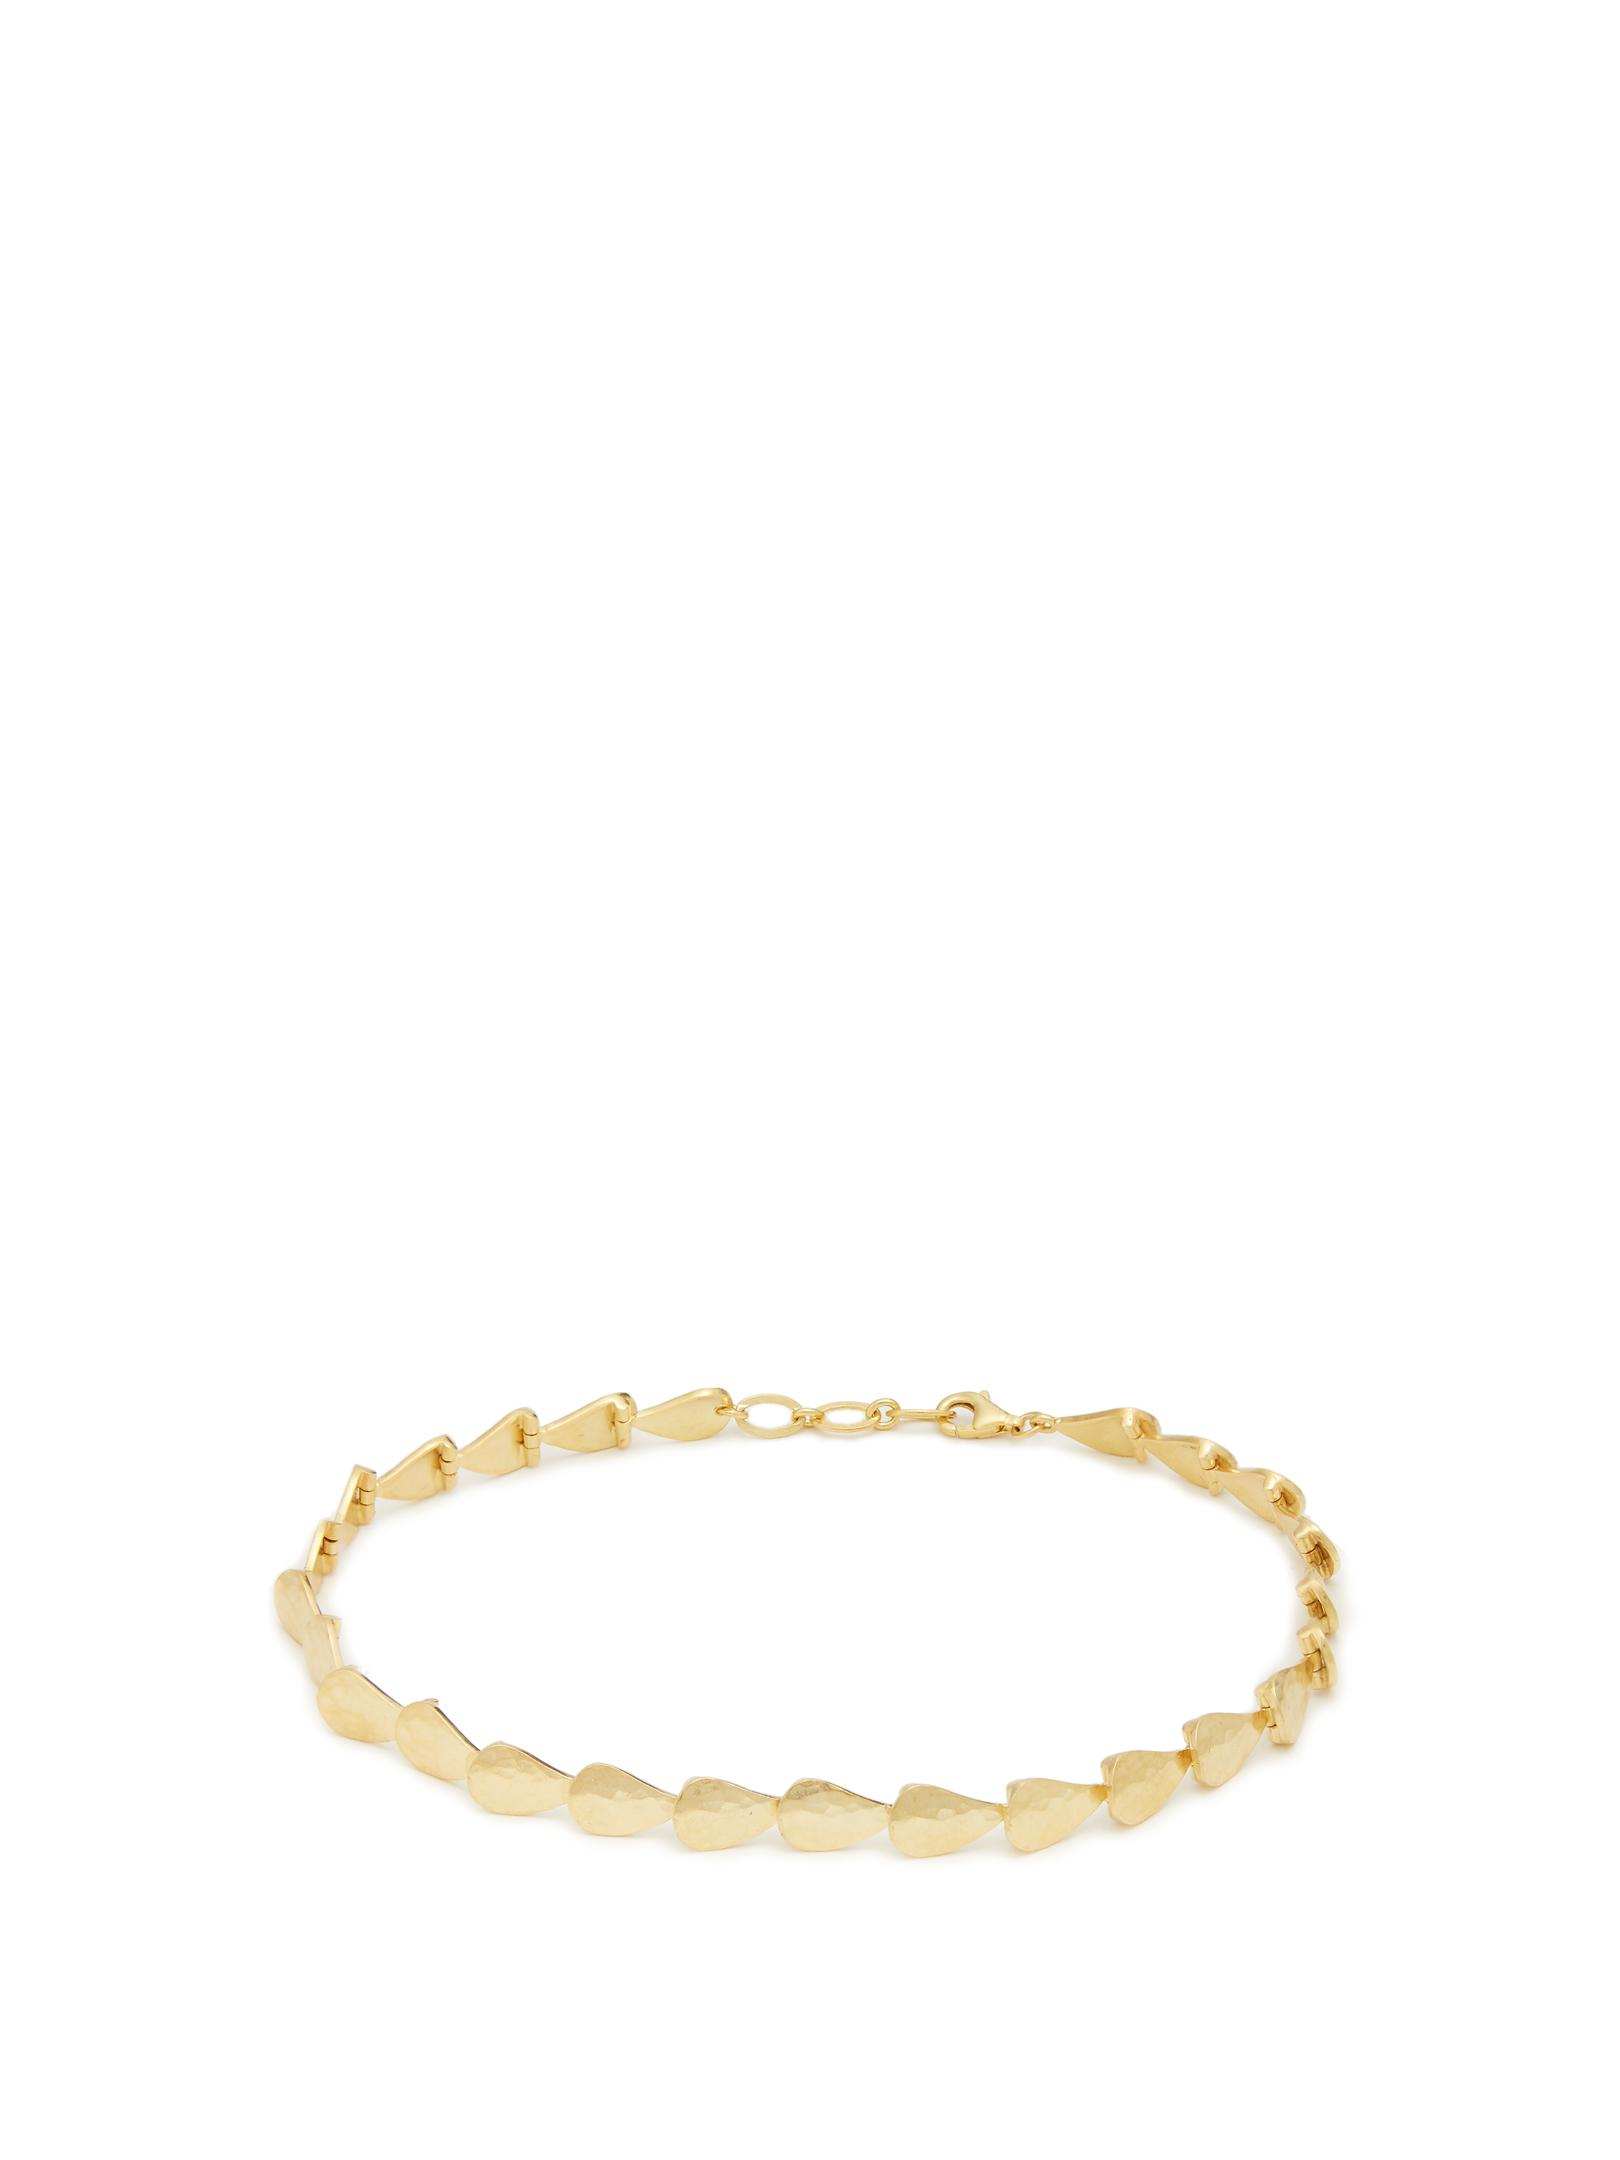 plated baby jewelry dp bangle thai amazon gold bracelet new anklet com bells yellow born set with